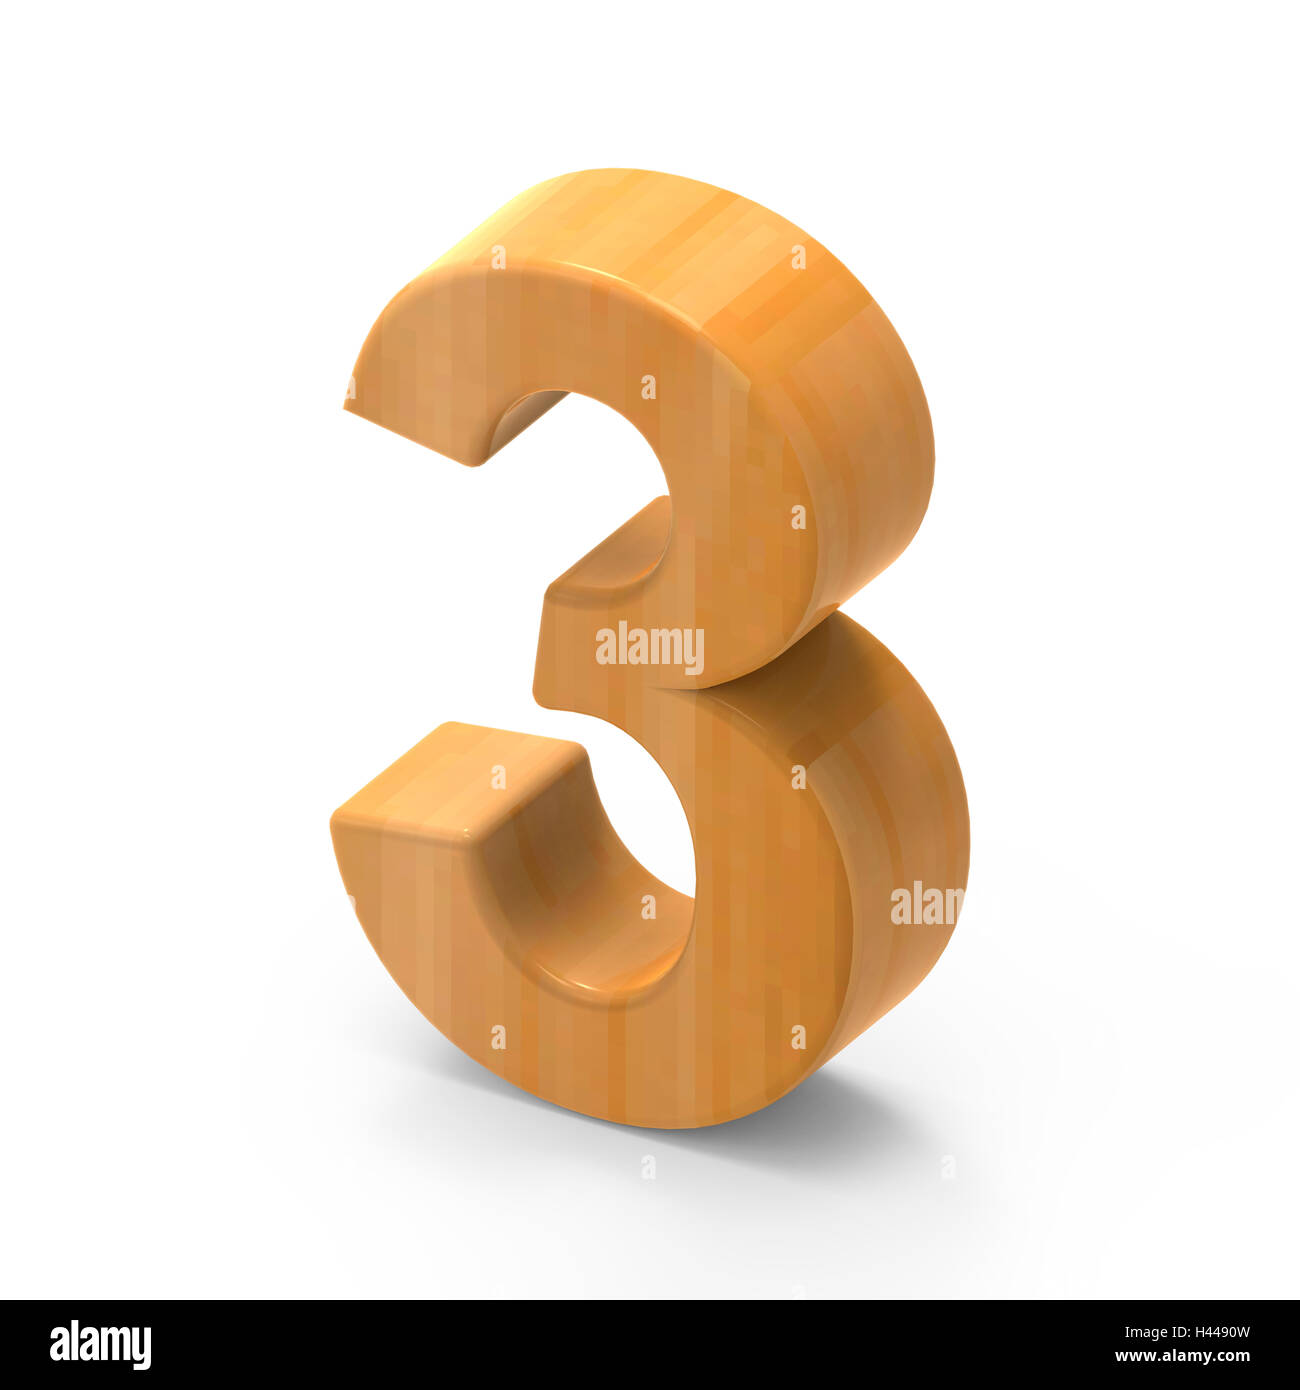 3D rendering white number 3 isolated on white background, light brown wooden grain, right side top view number - Stock Image